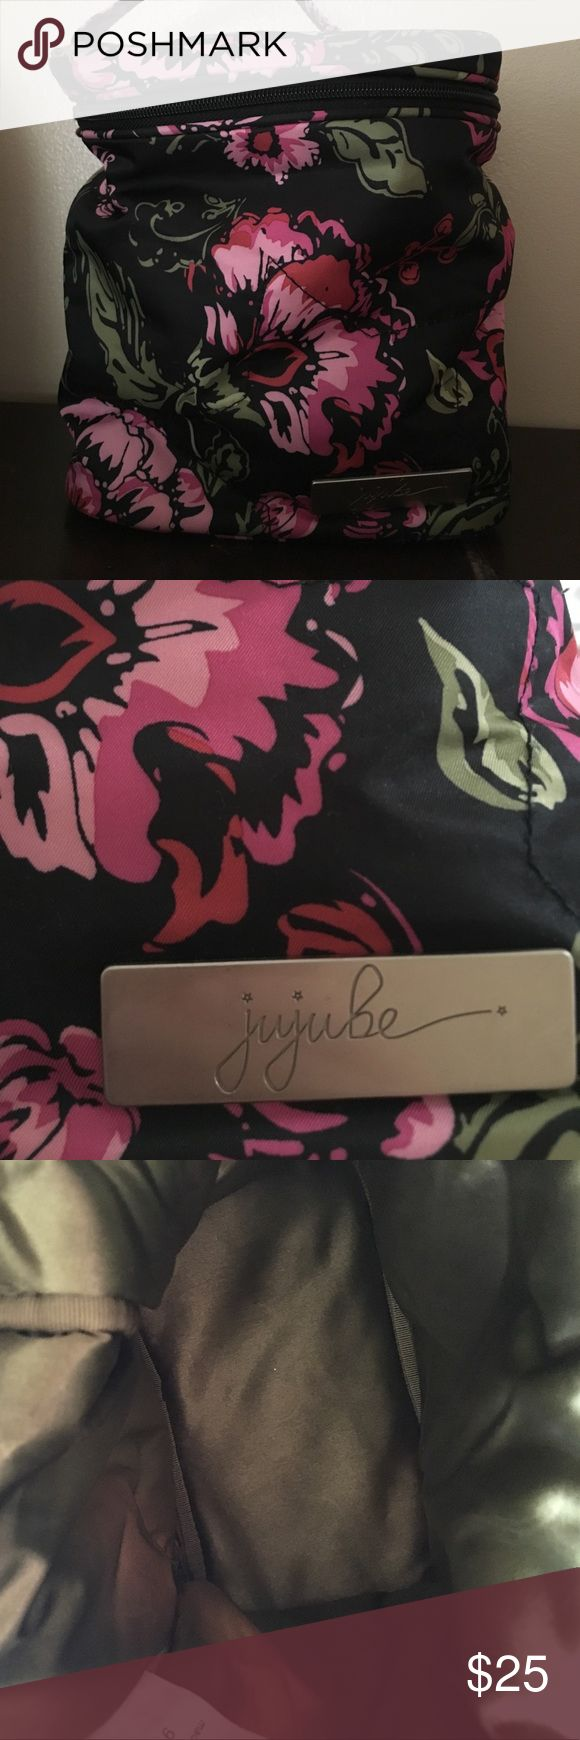 Jujube Fuel cell Blooming romance fuel cell . Excellent condition 🌸🌺 jujube Bags Baby Bags